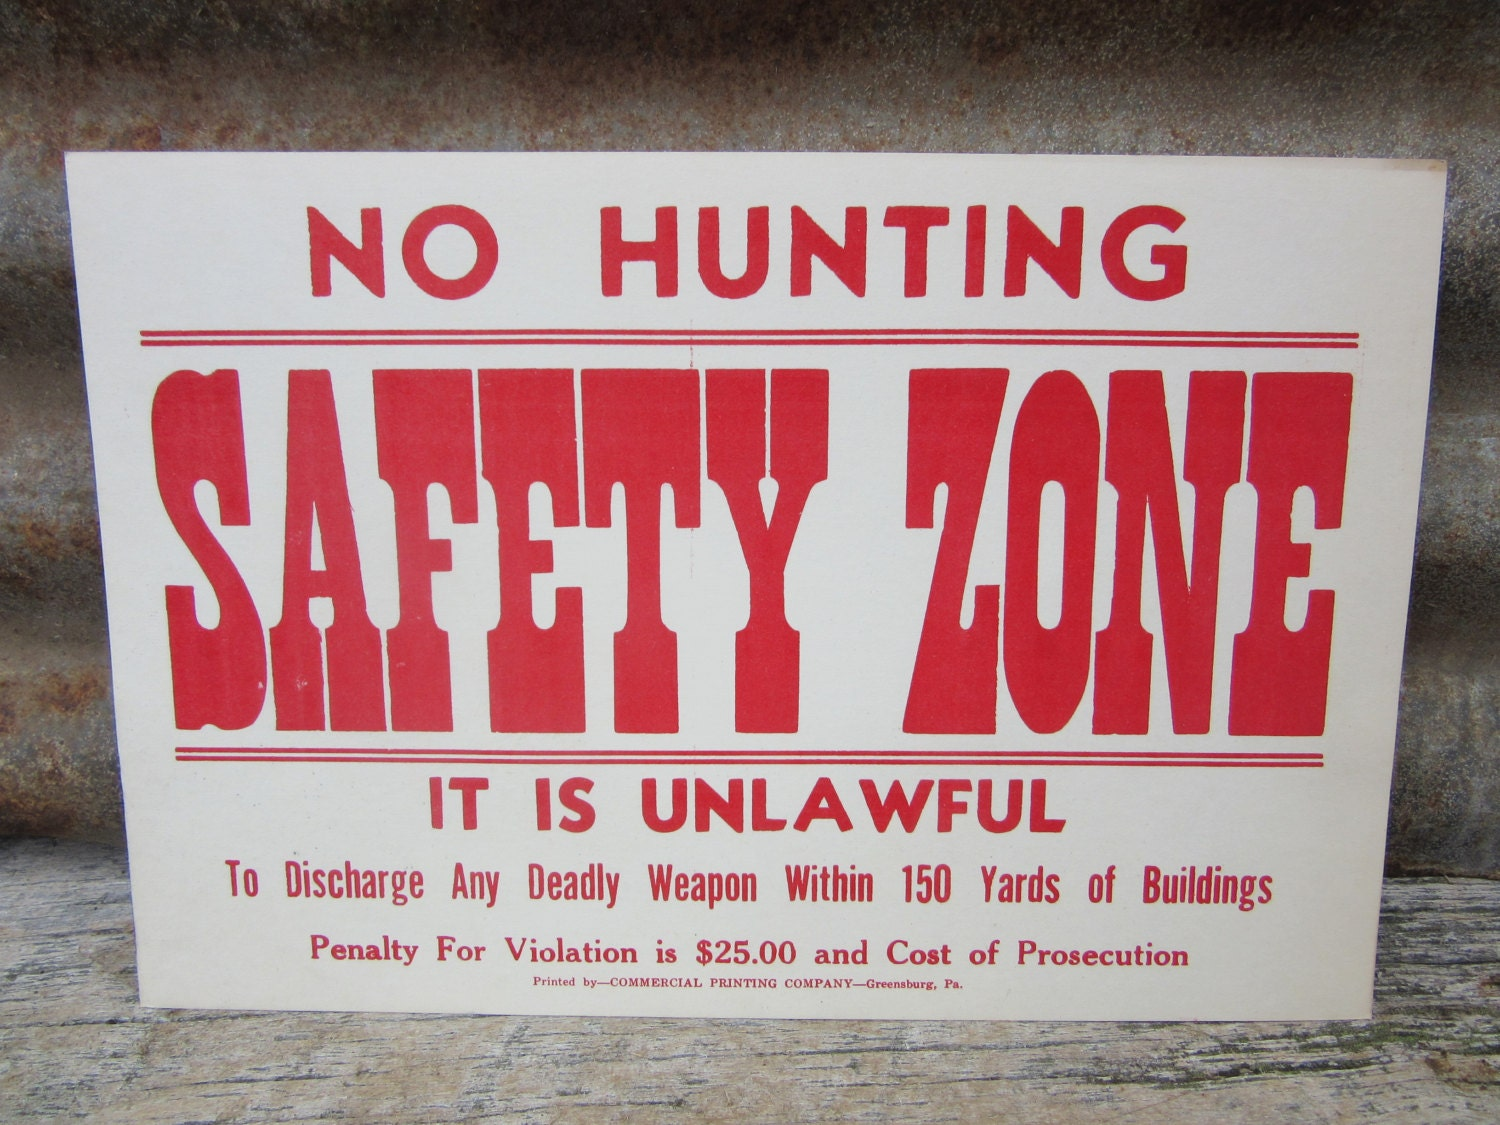 Vintage Cardboard Sign No Hunting Safety Zone Red Pennsylvania Game  Commision 1960s Era Sign Hunting Vintage Cardboard Card Stock Sign